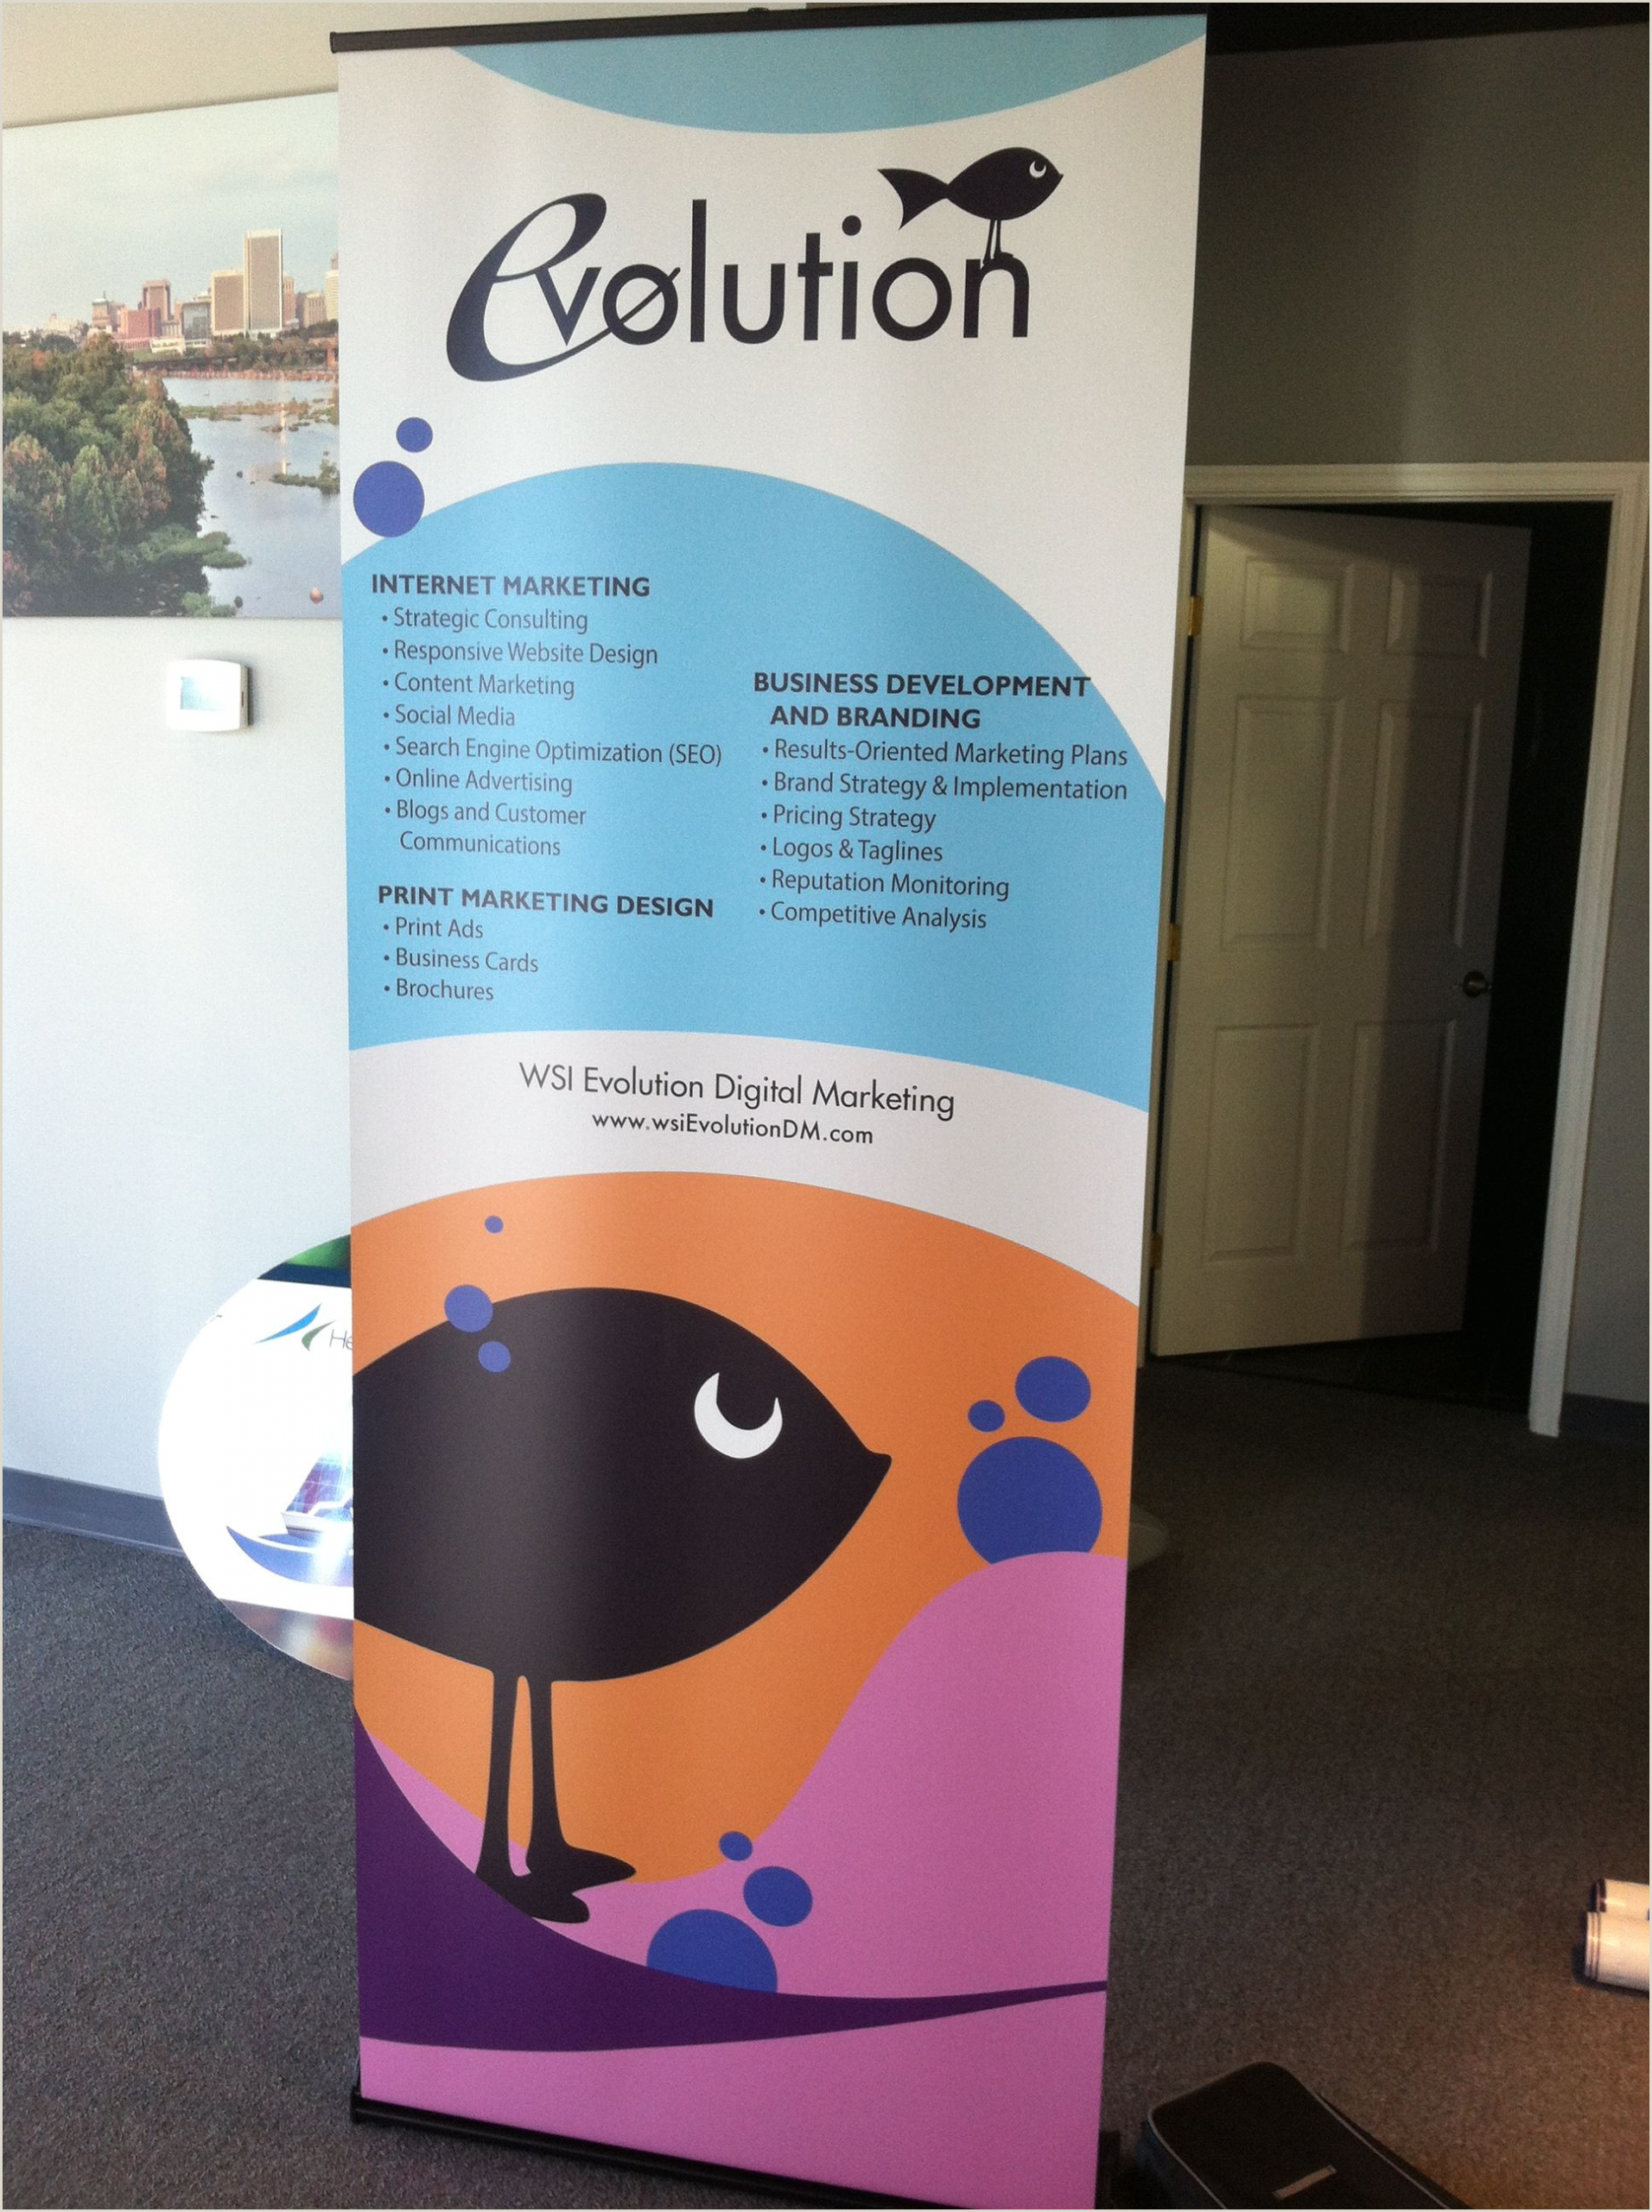 Retractable Banners And Stands The Colors And Graphics Are Great On This Retractable Banner